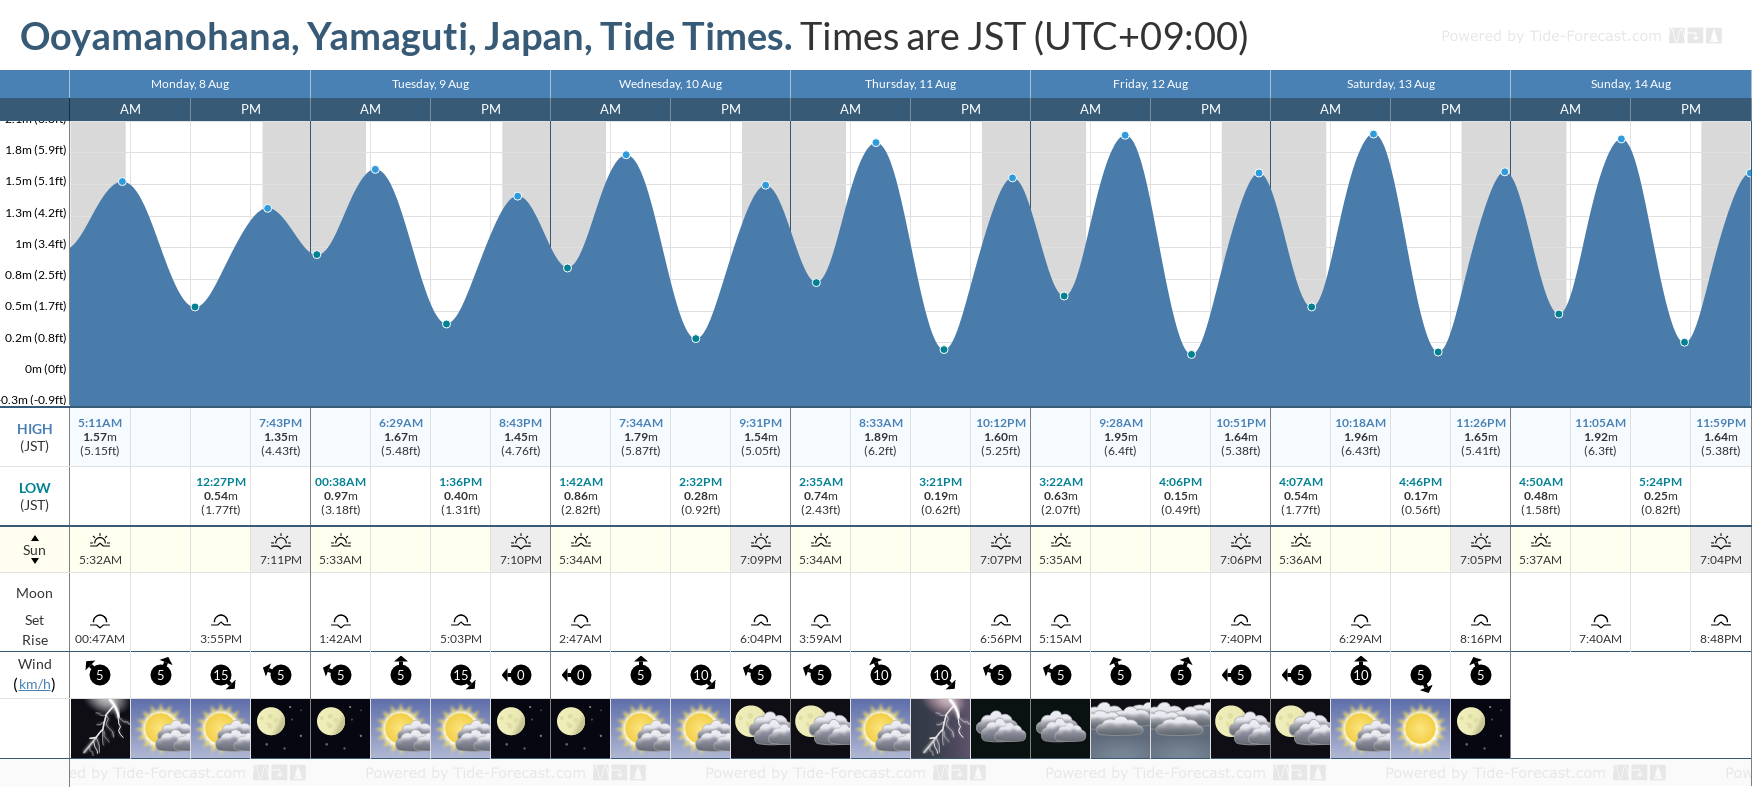 Ooyamanohana, Yamaguti, Japan Tide Chart including high and low tide tide times for the next 7 days